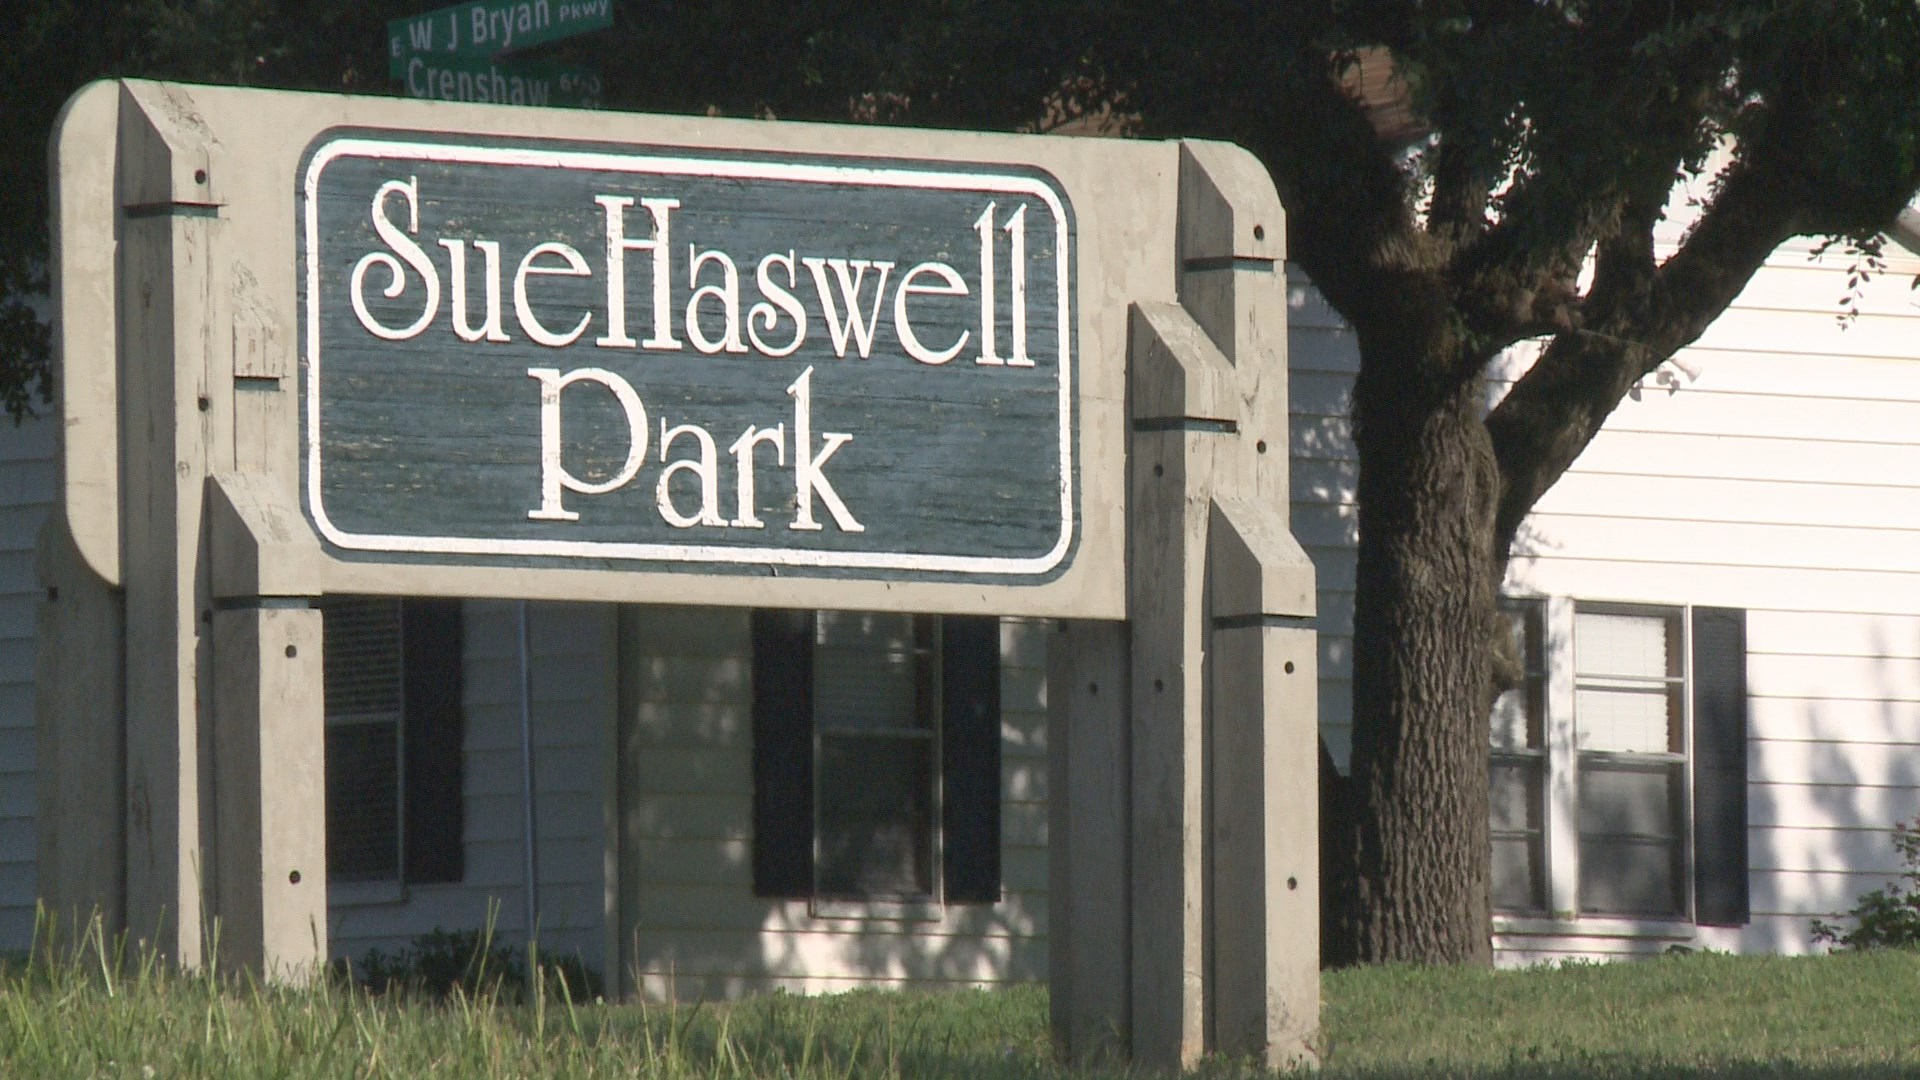 City of Bryan updates plans for Sue Haswell Park 1920x1080